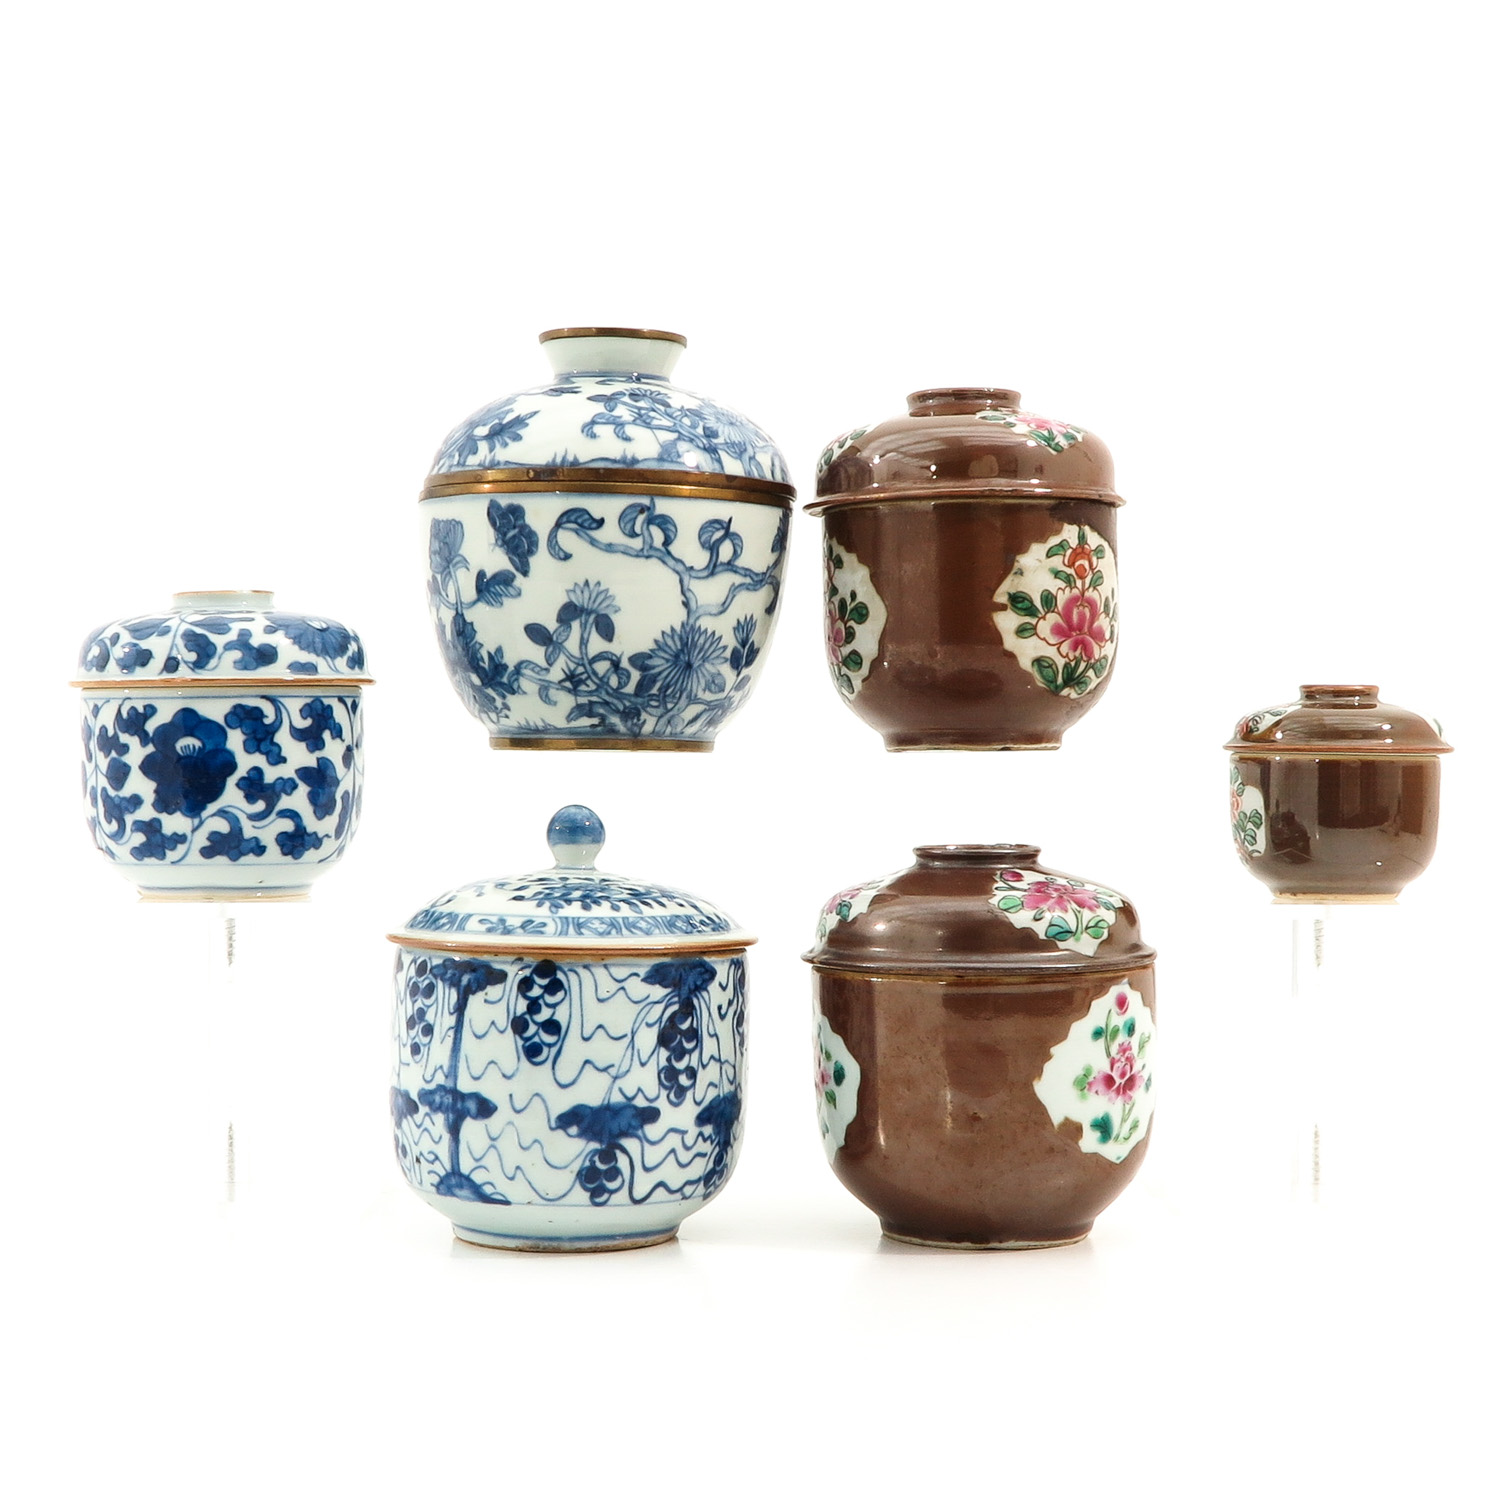 A Collection of Jars with Covers - Image 2 of 10